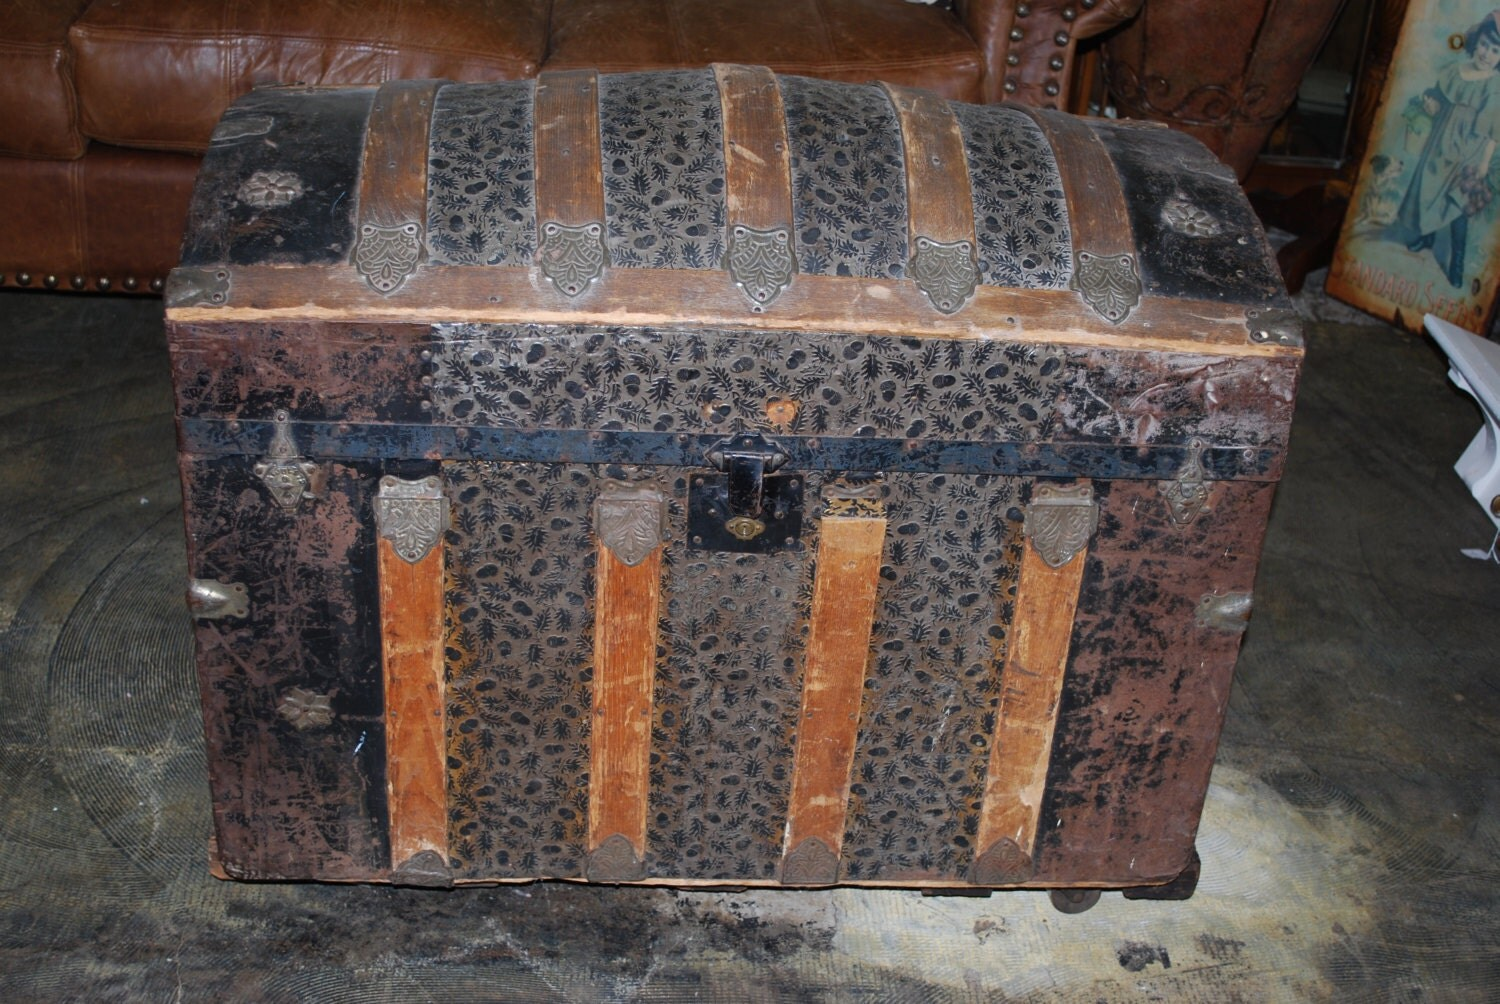 dating vintage trunks Antique trunks, also called traveling chests, were originally used as luggage for extended trips by stagecoach, train, or steamship today, given the weight limitations on airplanes and the new, lightweight wheeled luggage available, most people use these old trunks as furniture—chests for storing things like blankets, linens, papers, and other memorabilia.